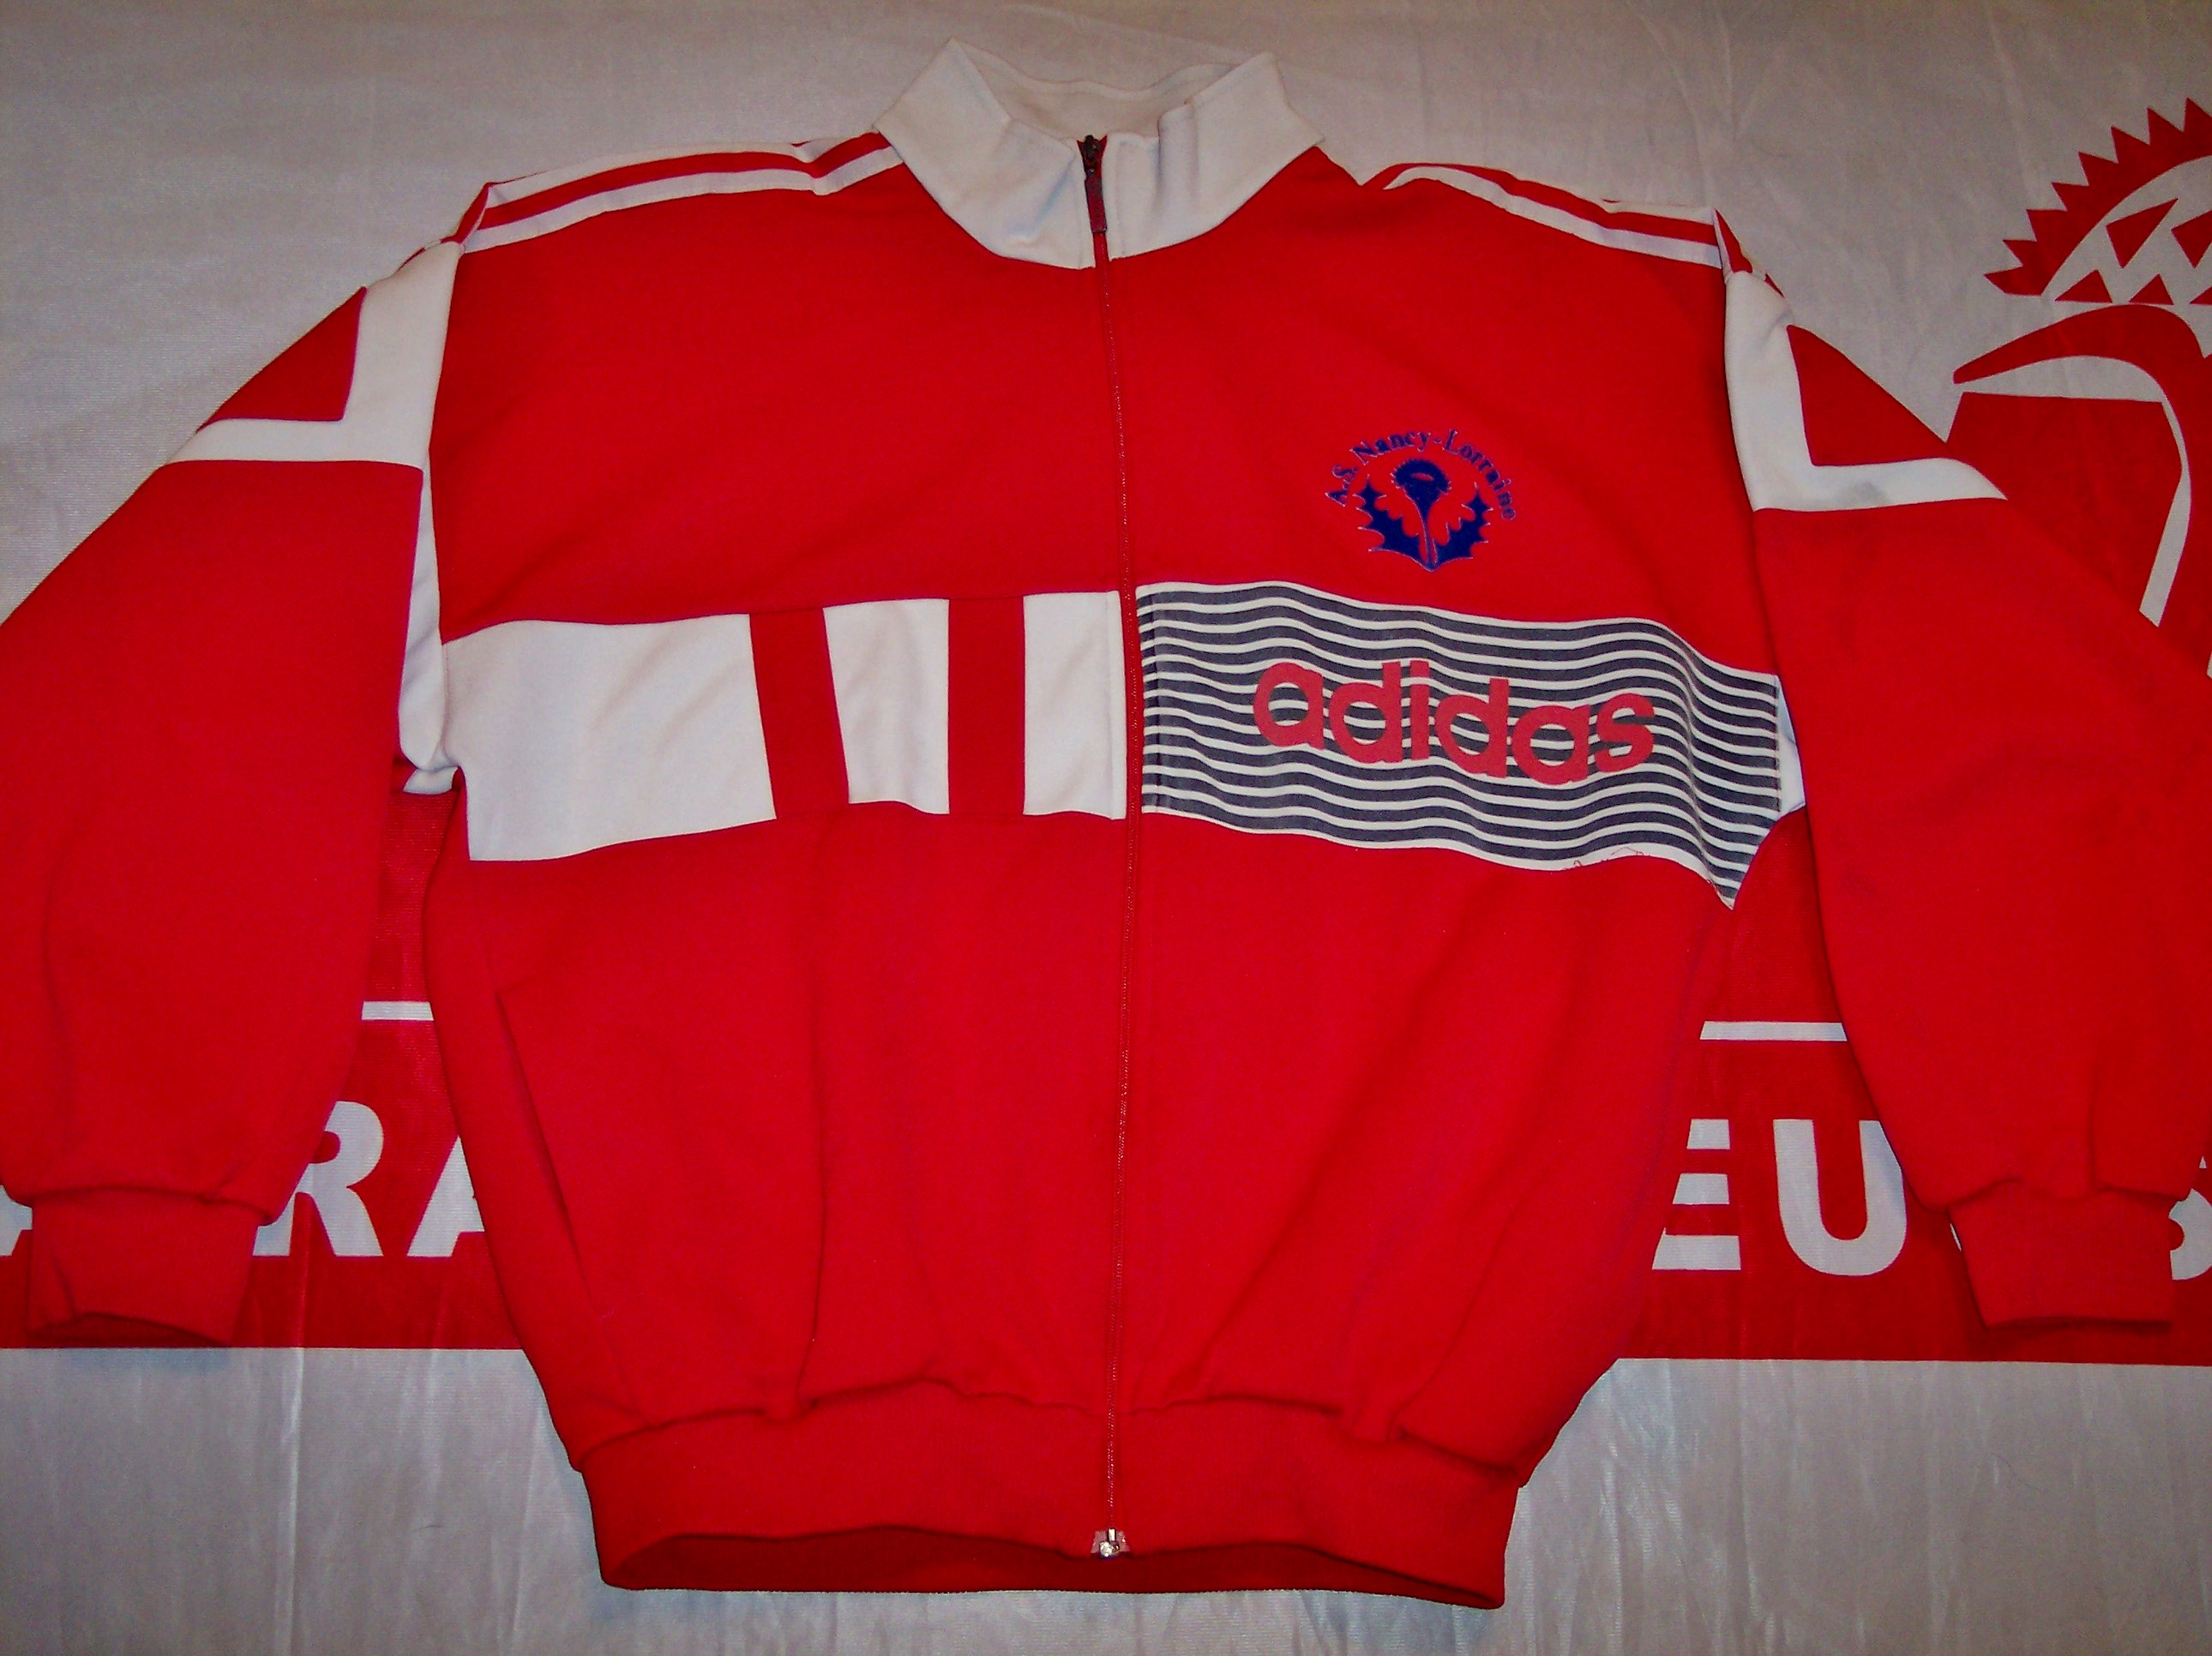 gilet ASNL 1998-1999  (Collection : ASNL-Infos)